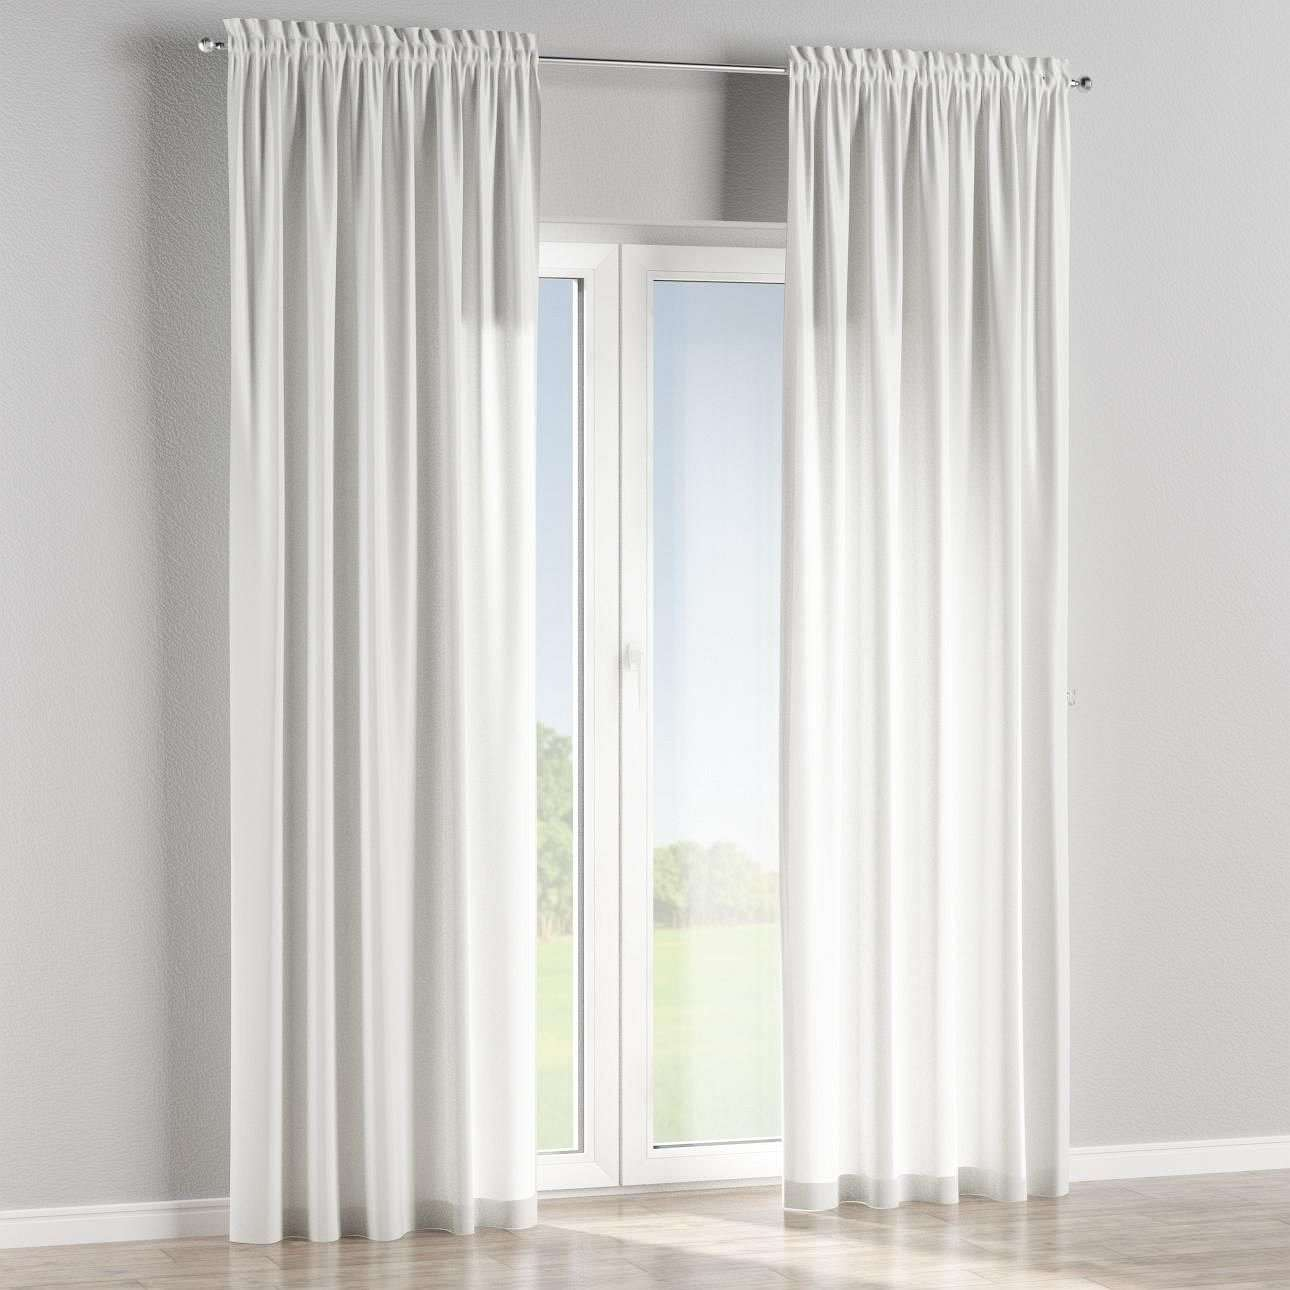 Slot and frill lined curtains in collection Norge, fabric: 140-78